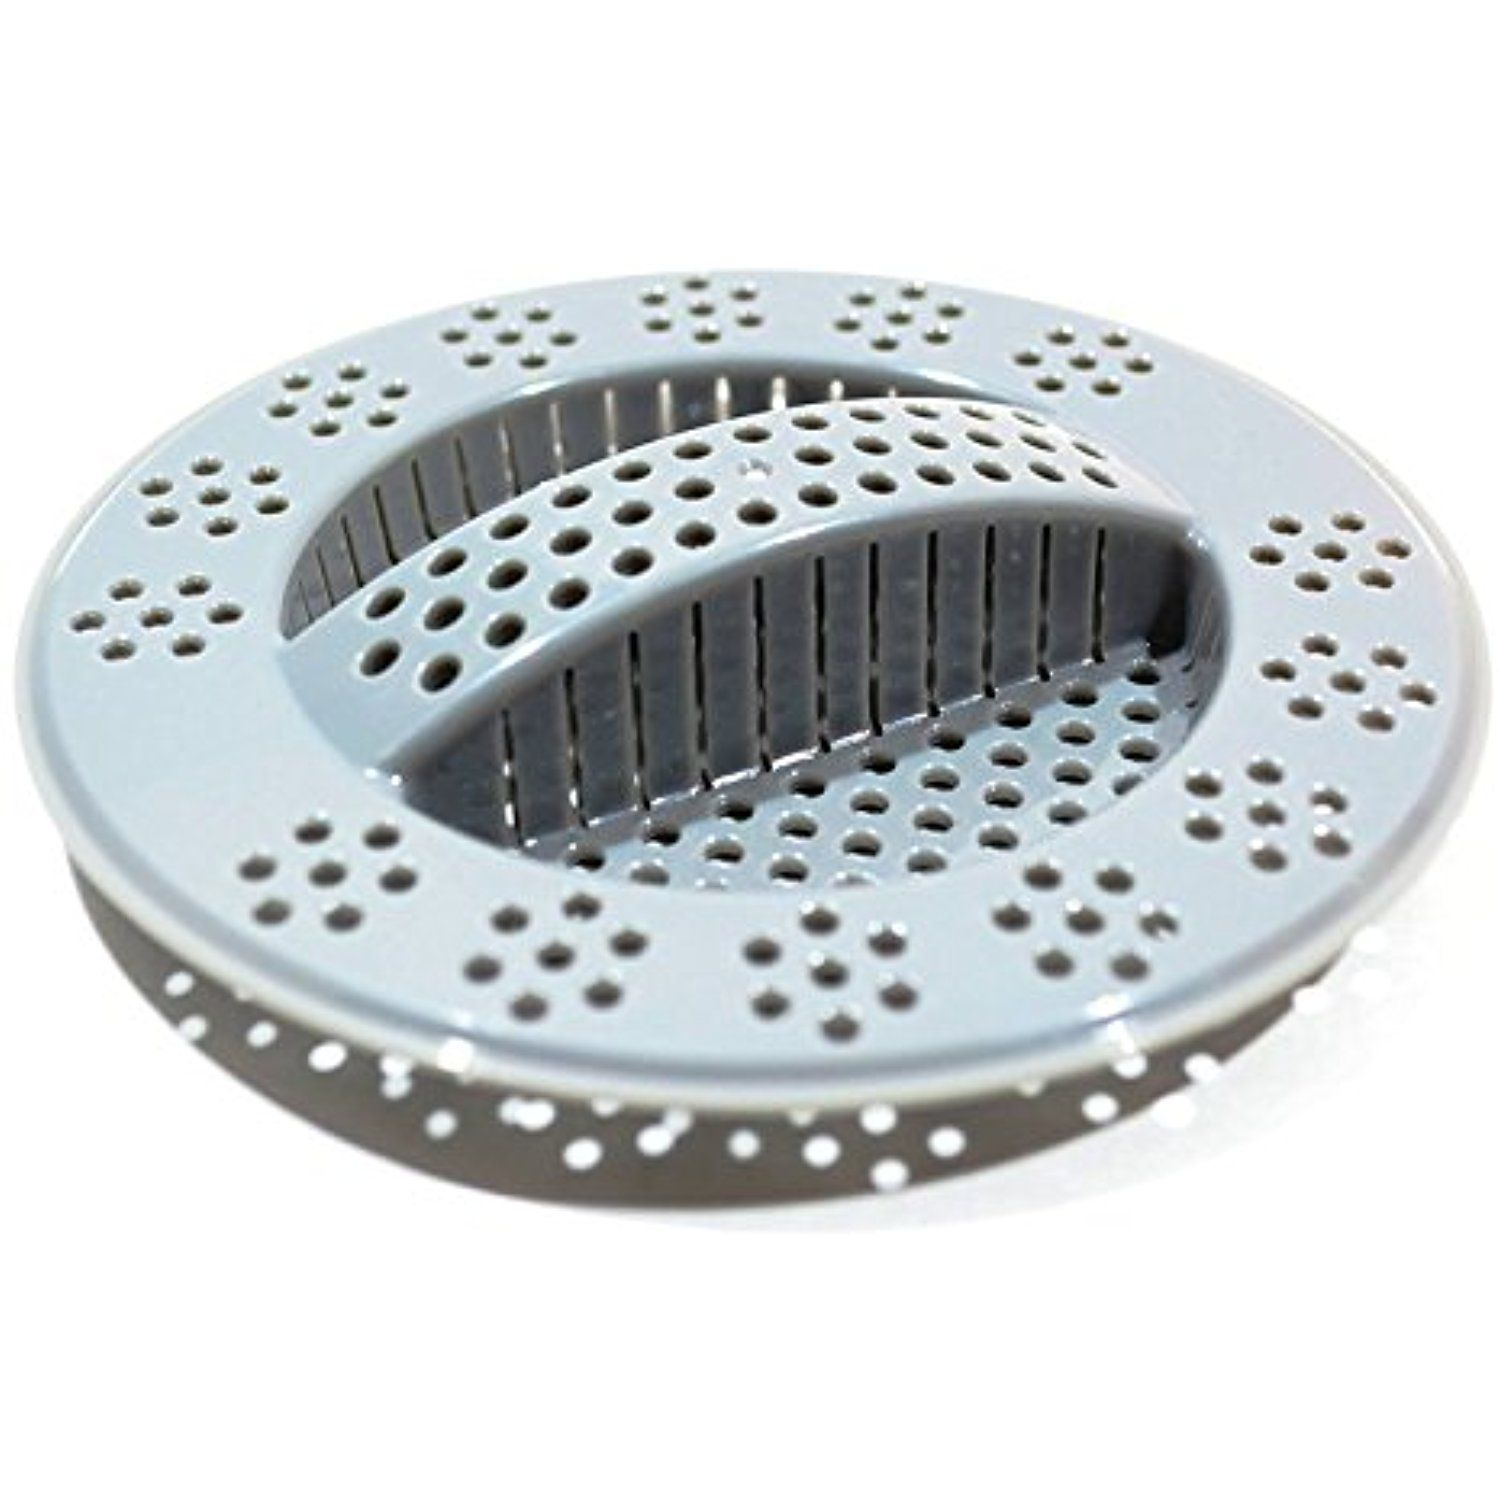 Hydroswift Fast Draining Kitchen Sink Strainer - Replaces Sink ...